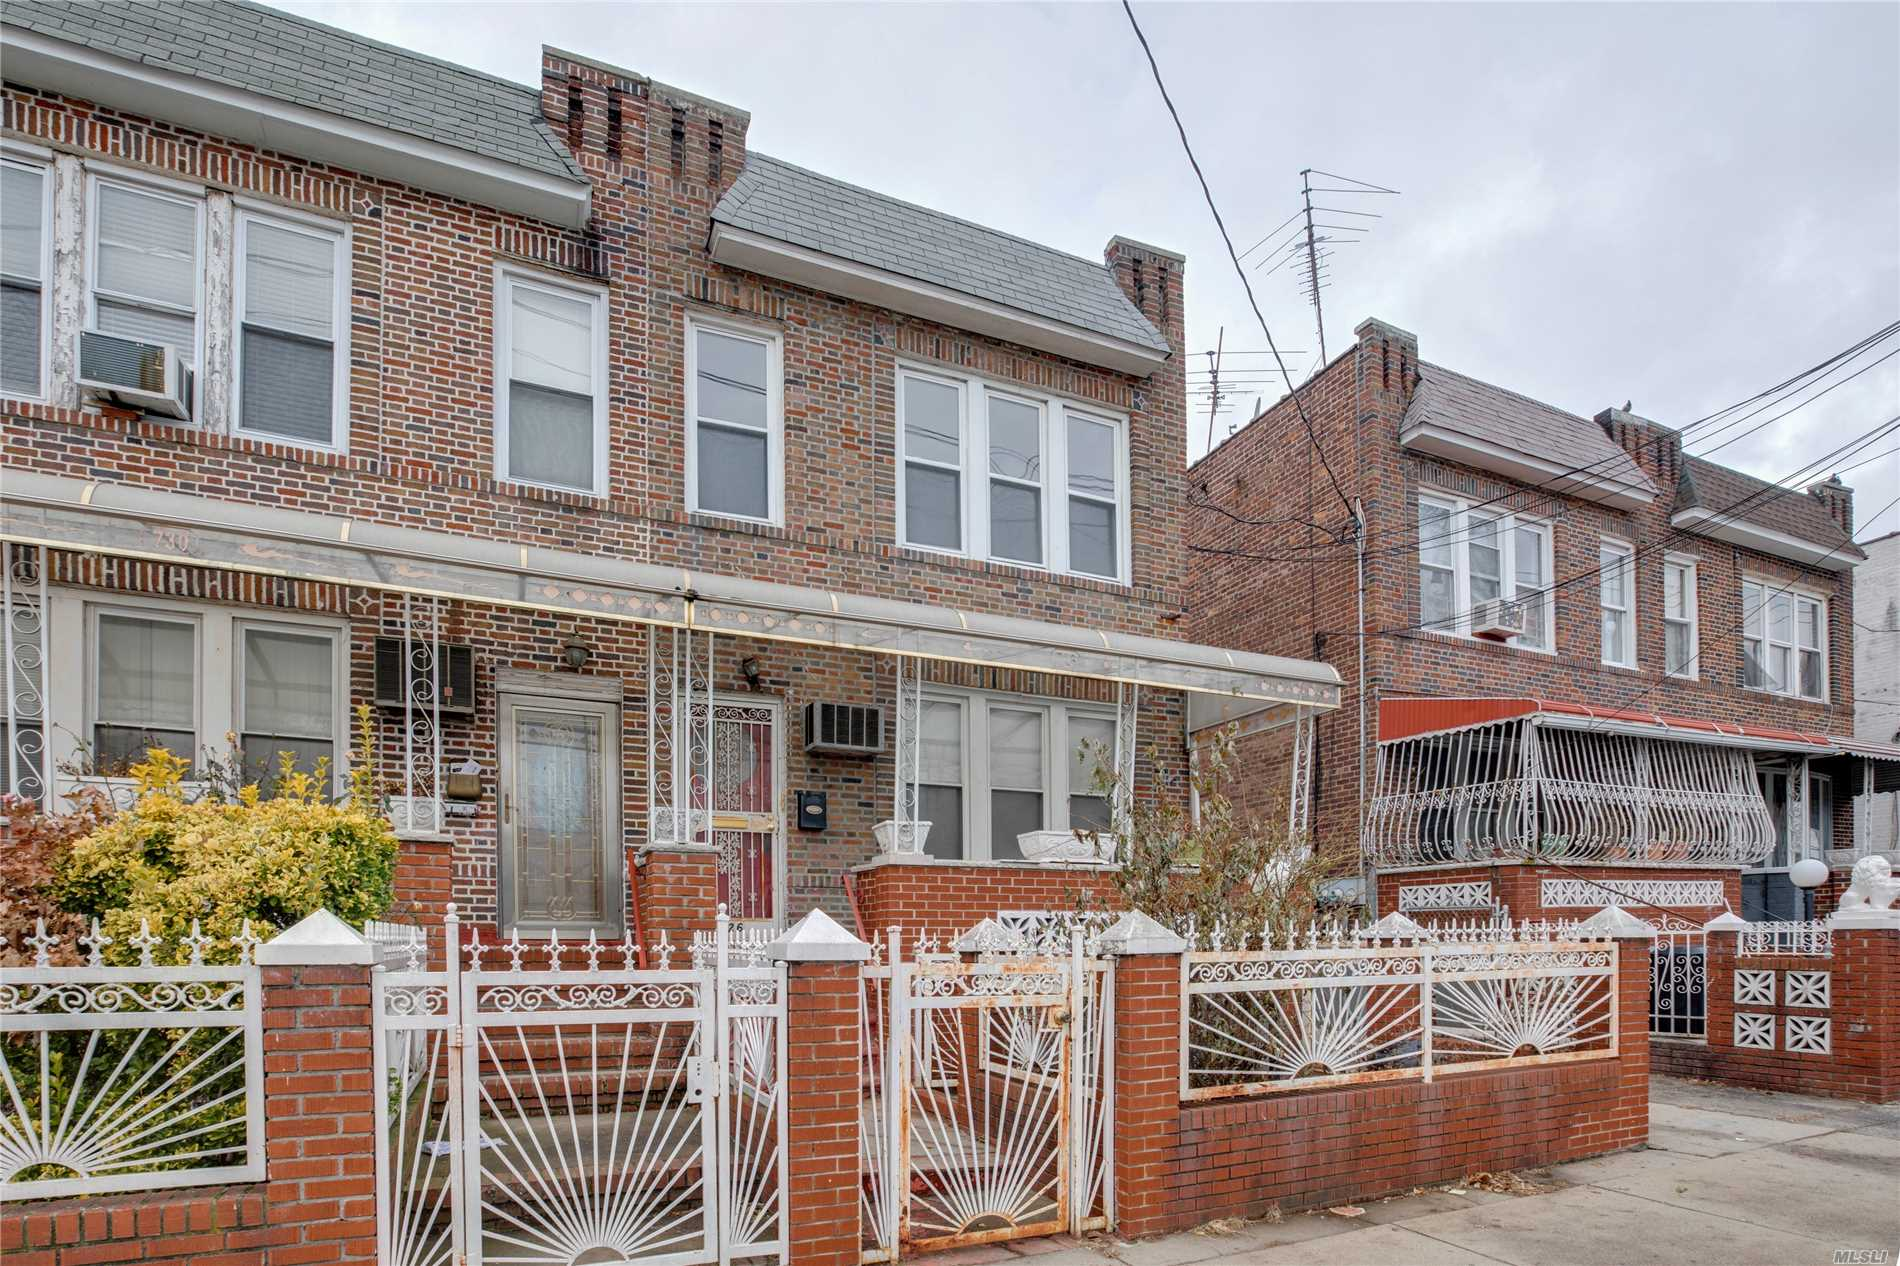 726 E 53rd St - Brooklyn Other, New York